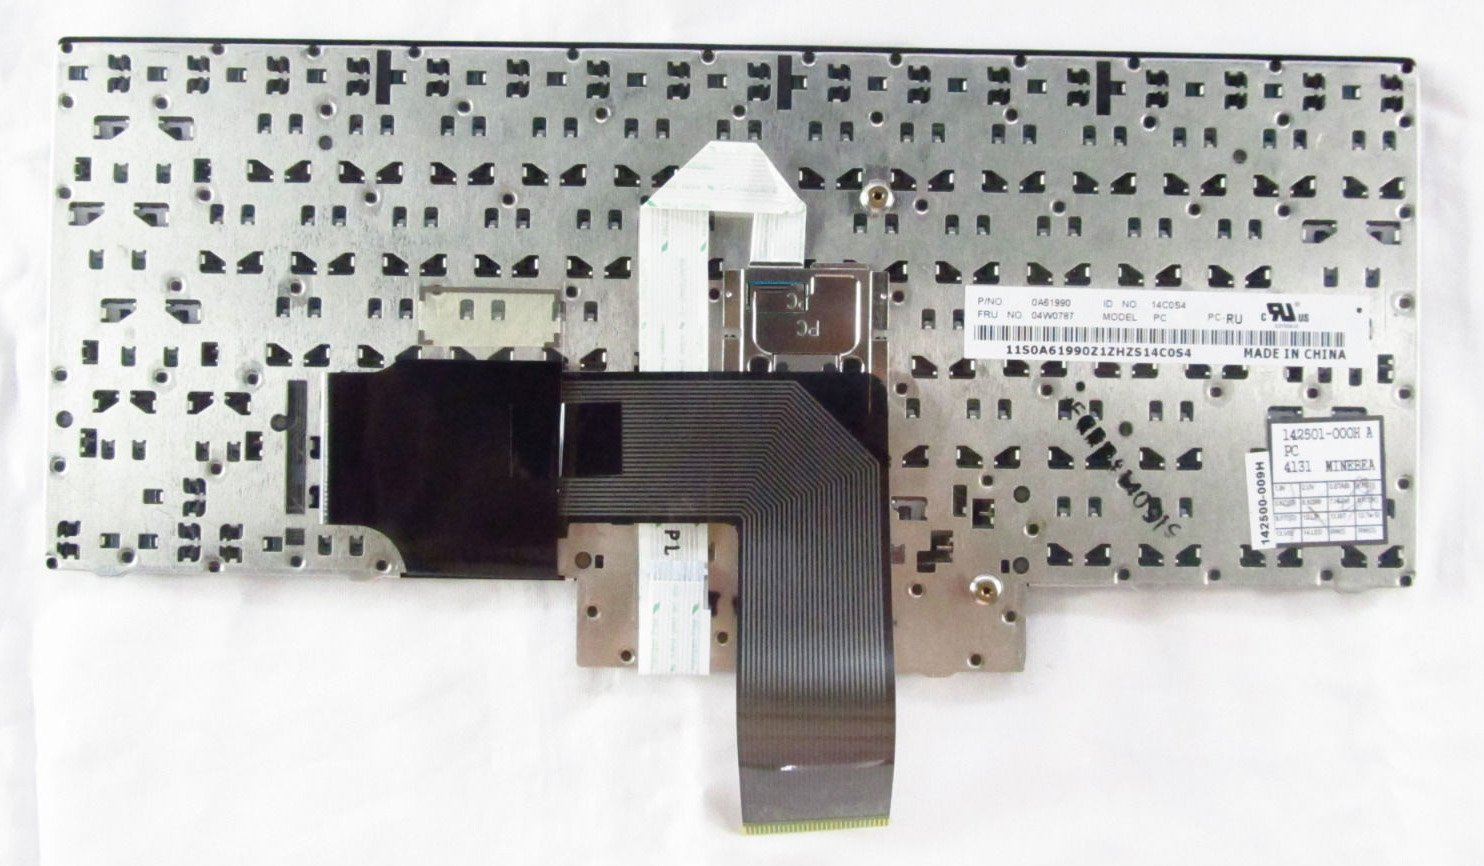 US Layout Replacement Keyboard for Lenovo Thinkpad E320 E325 E420 E425 Compatible FRU 63Y0213 04W0800